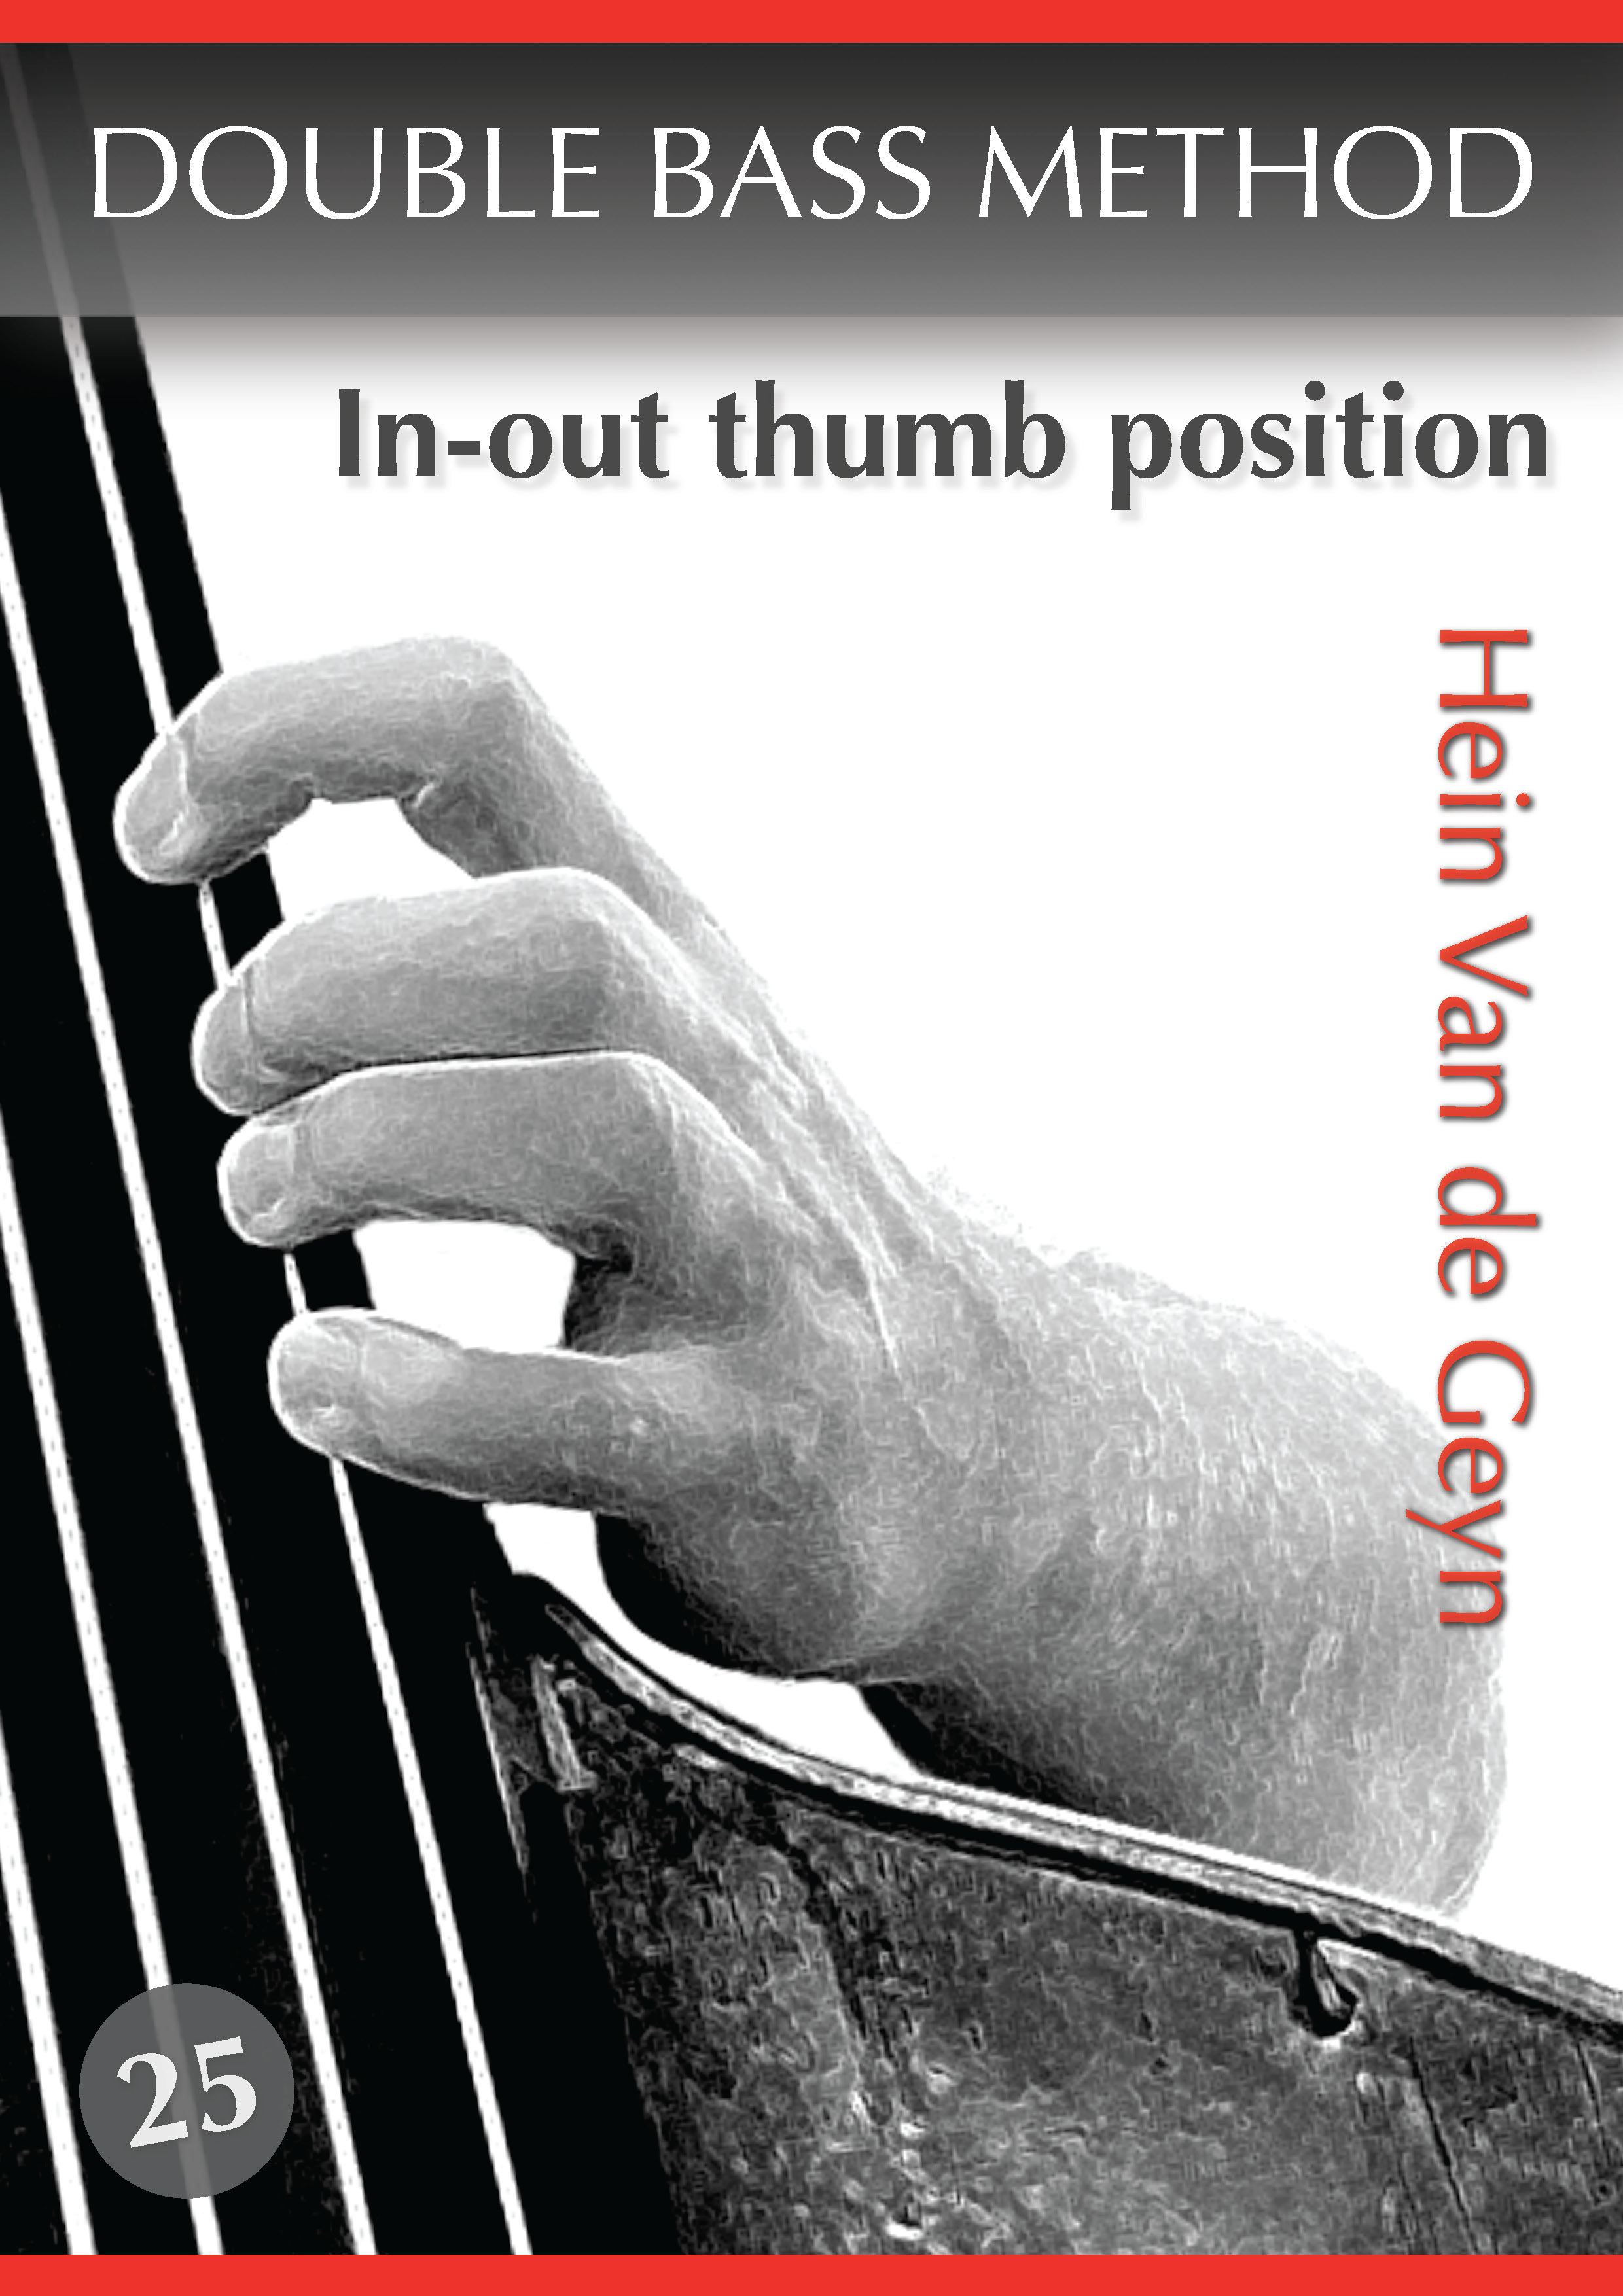 In-out thumb position - Hein Van de Geyn - Double Bass Method